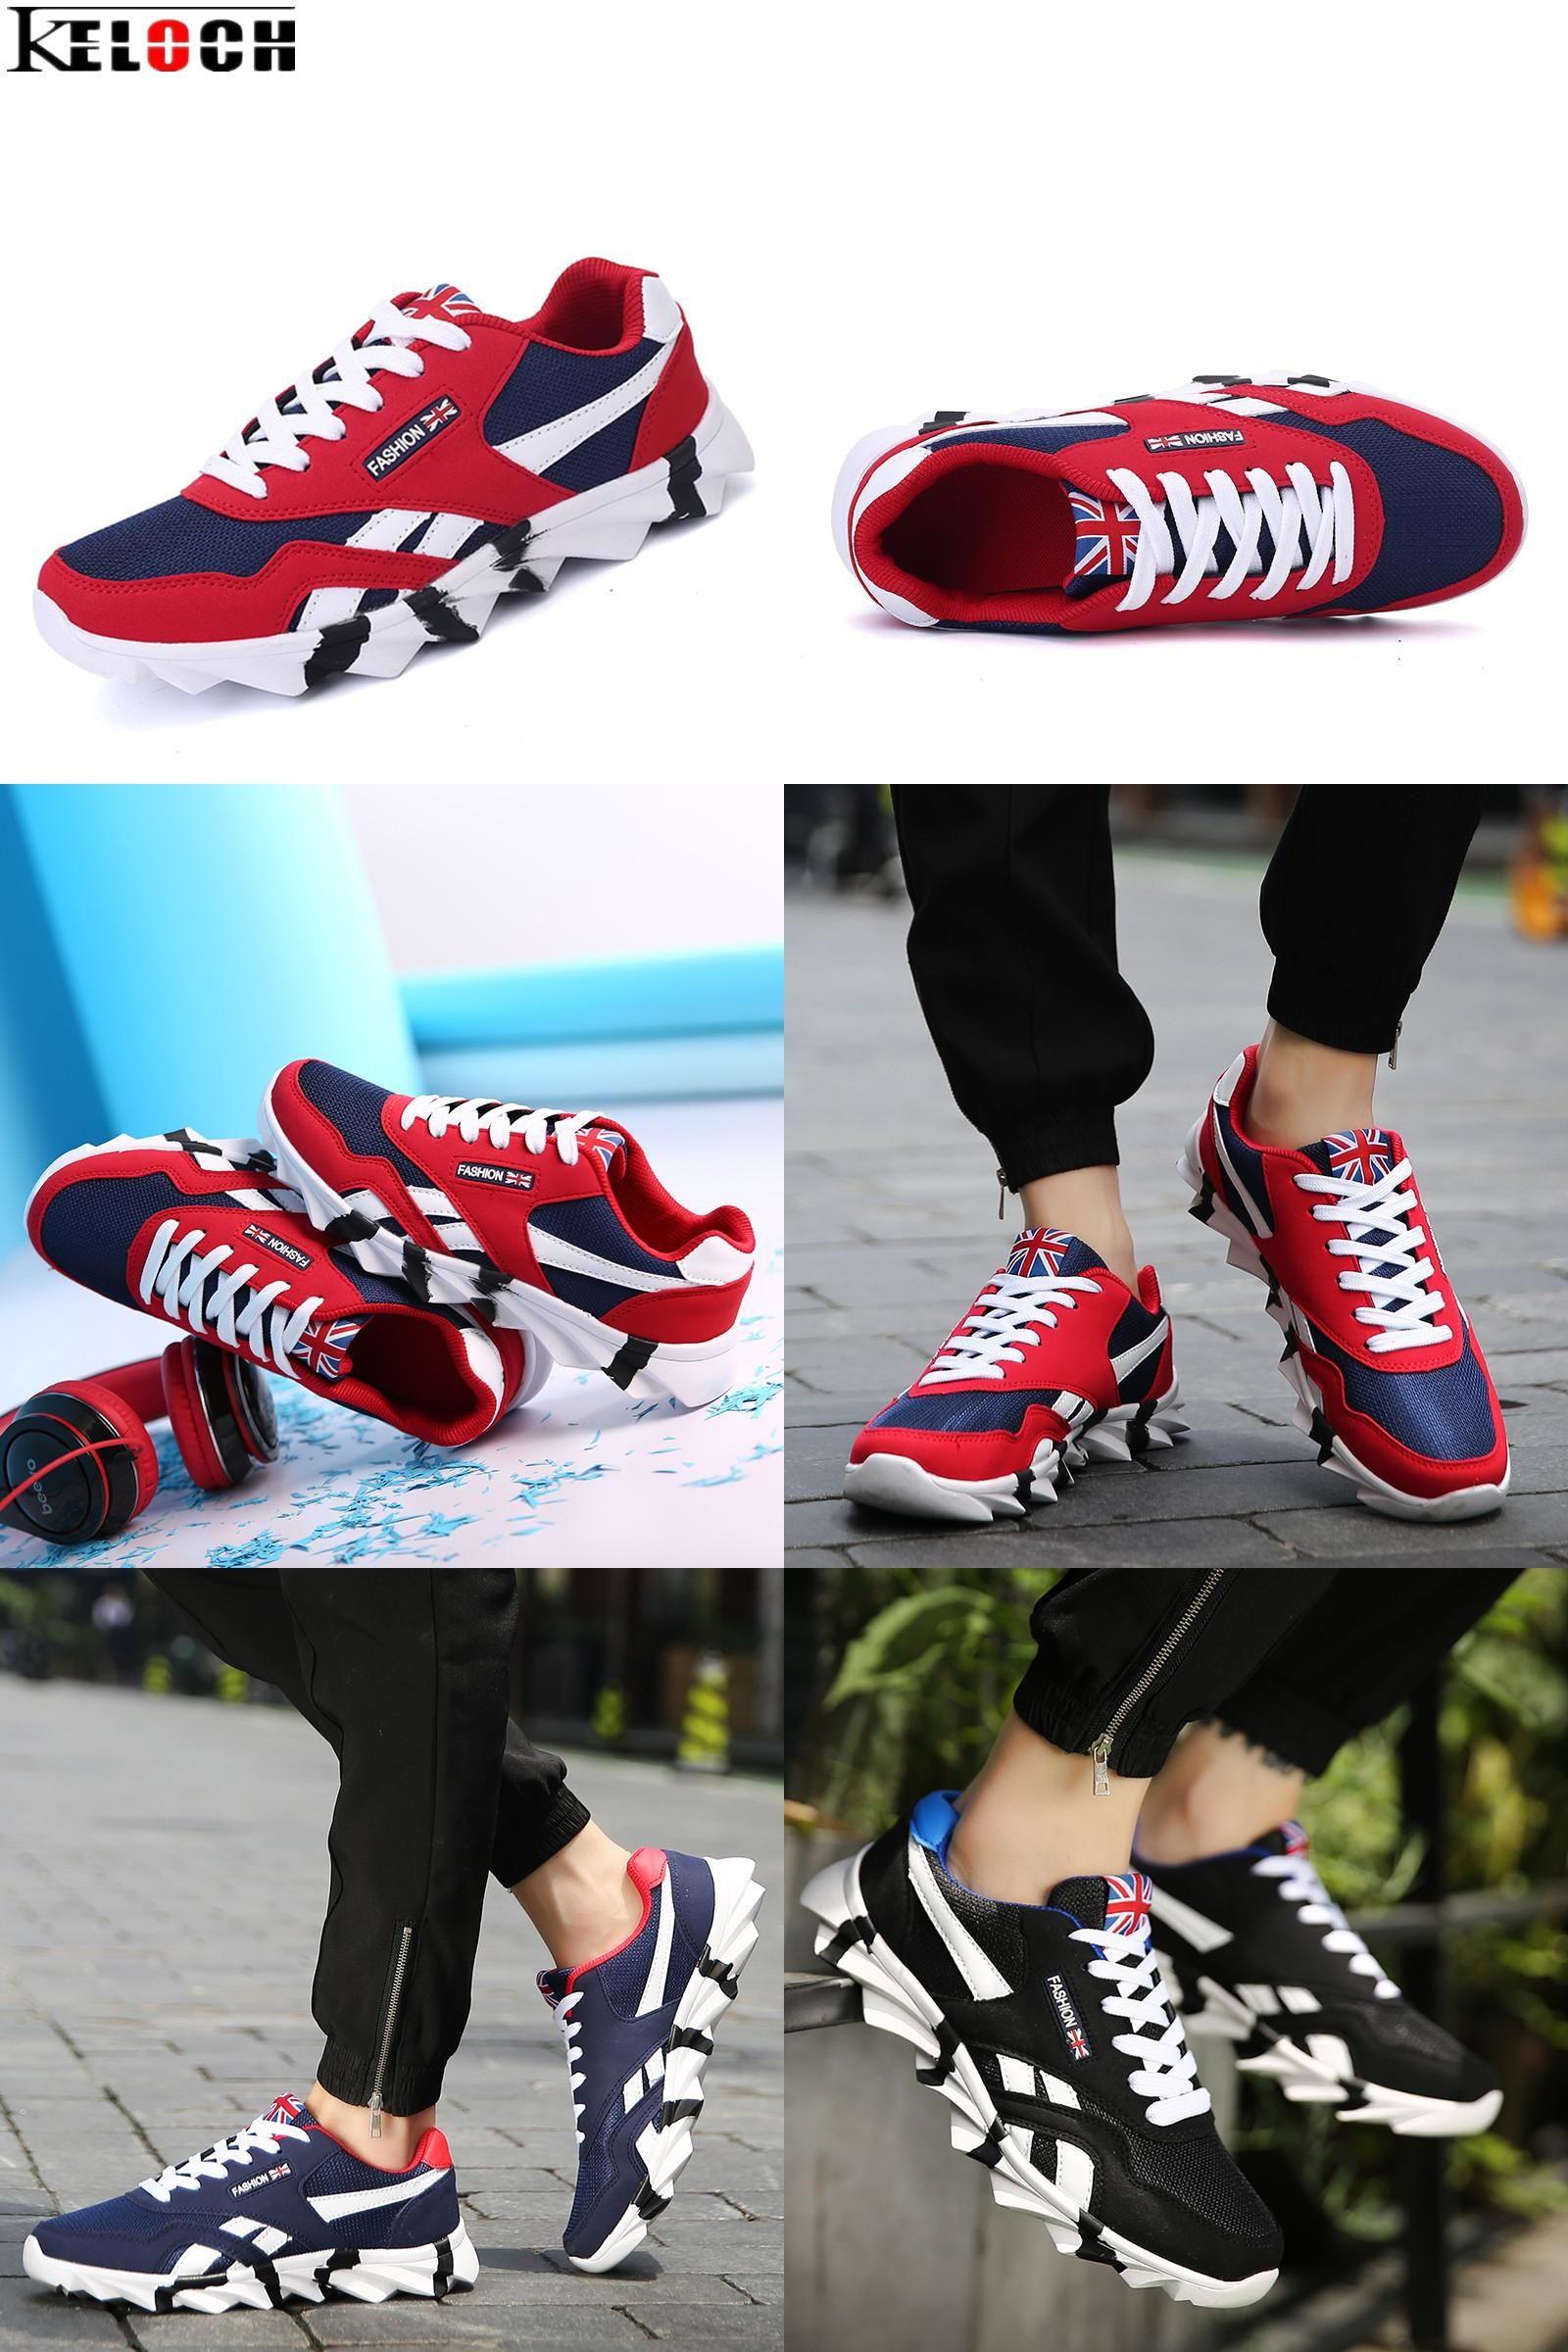 Equipement trail boutique running sports outdoor shop -  visit to buy keloch spring men trail running shoes for men breathable trainers running